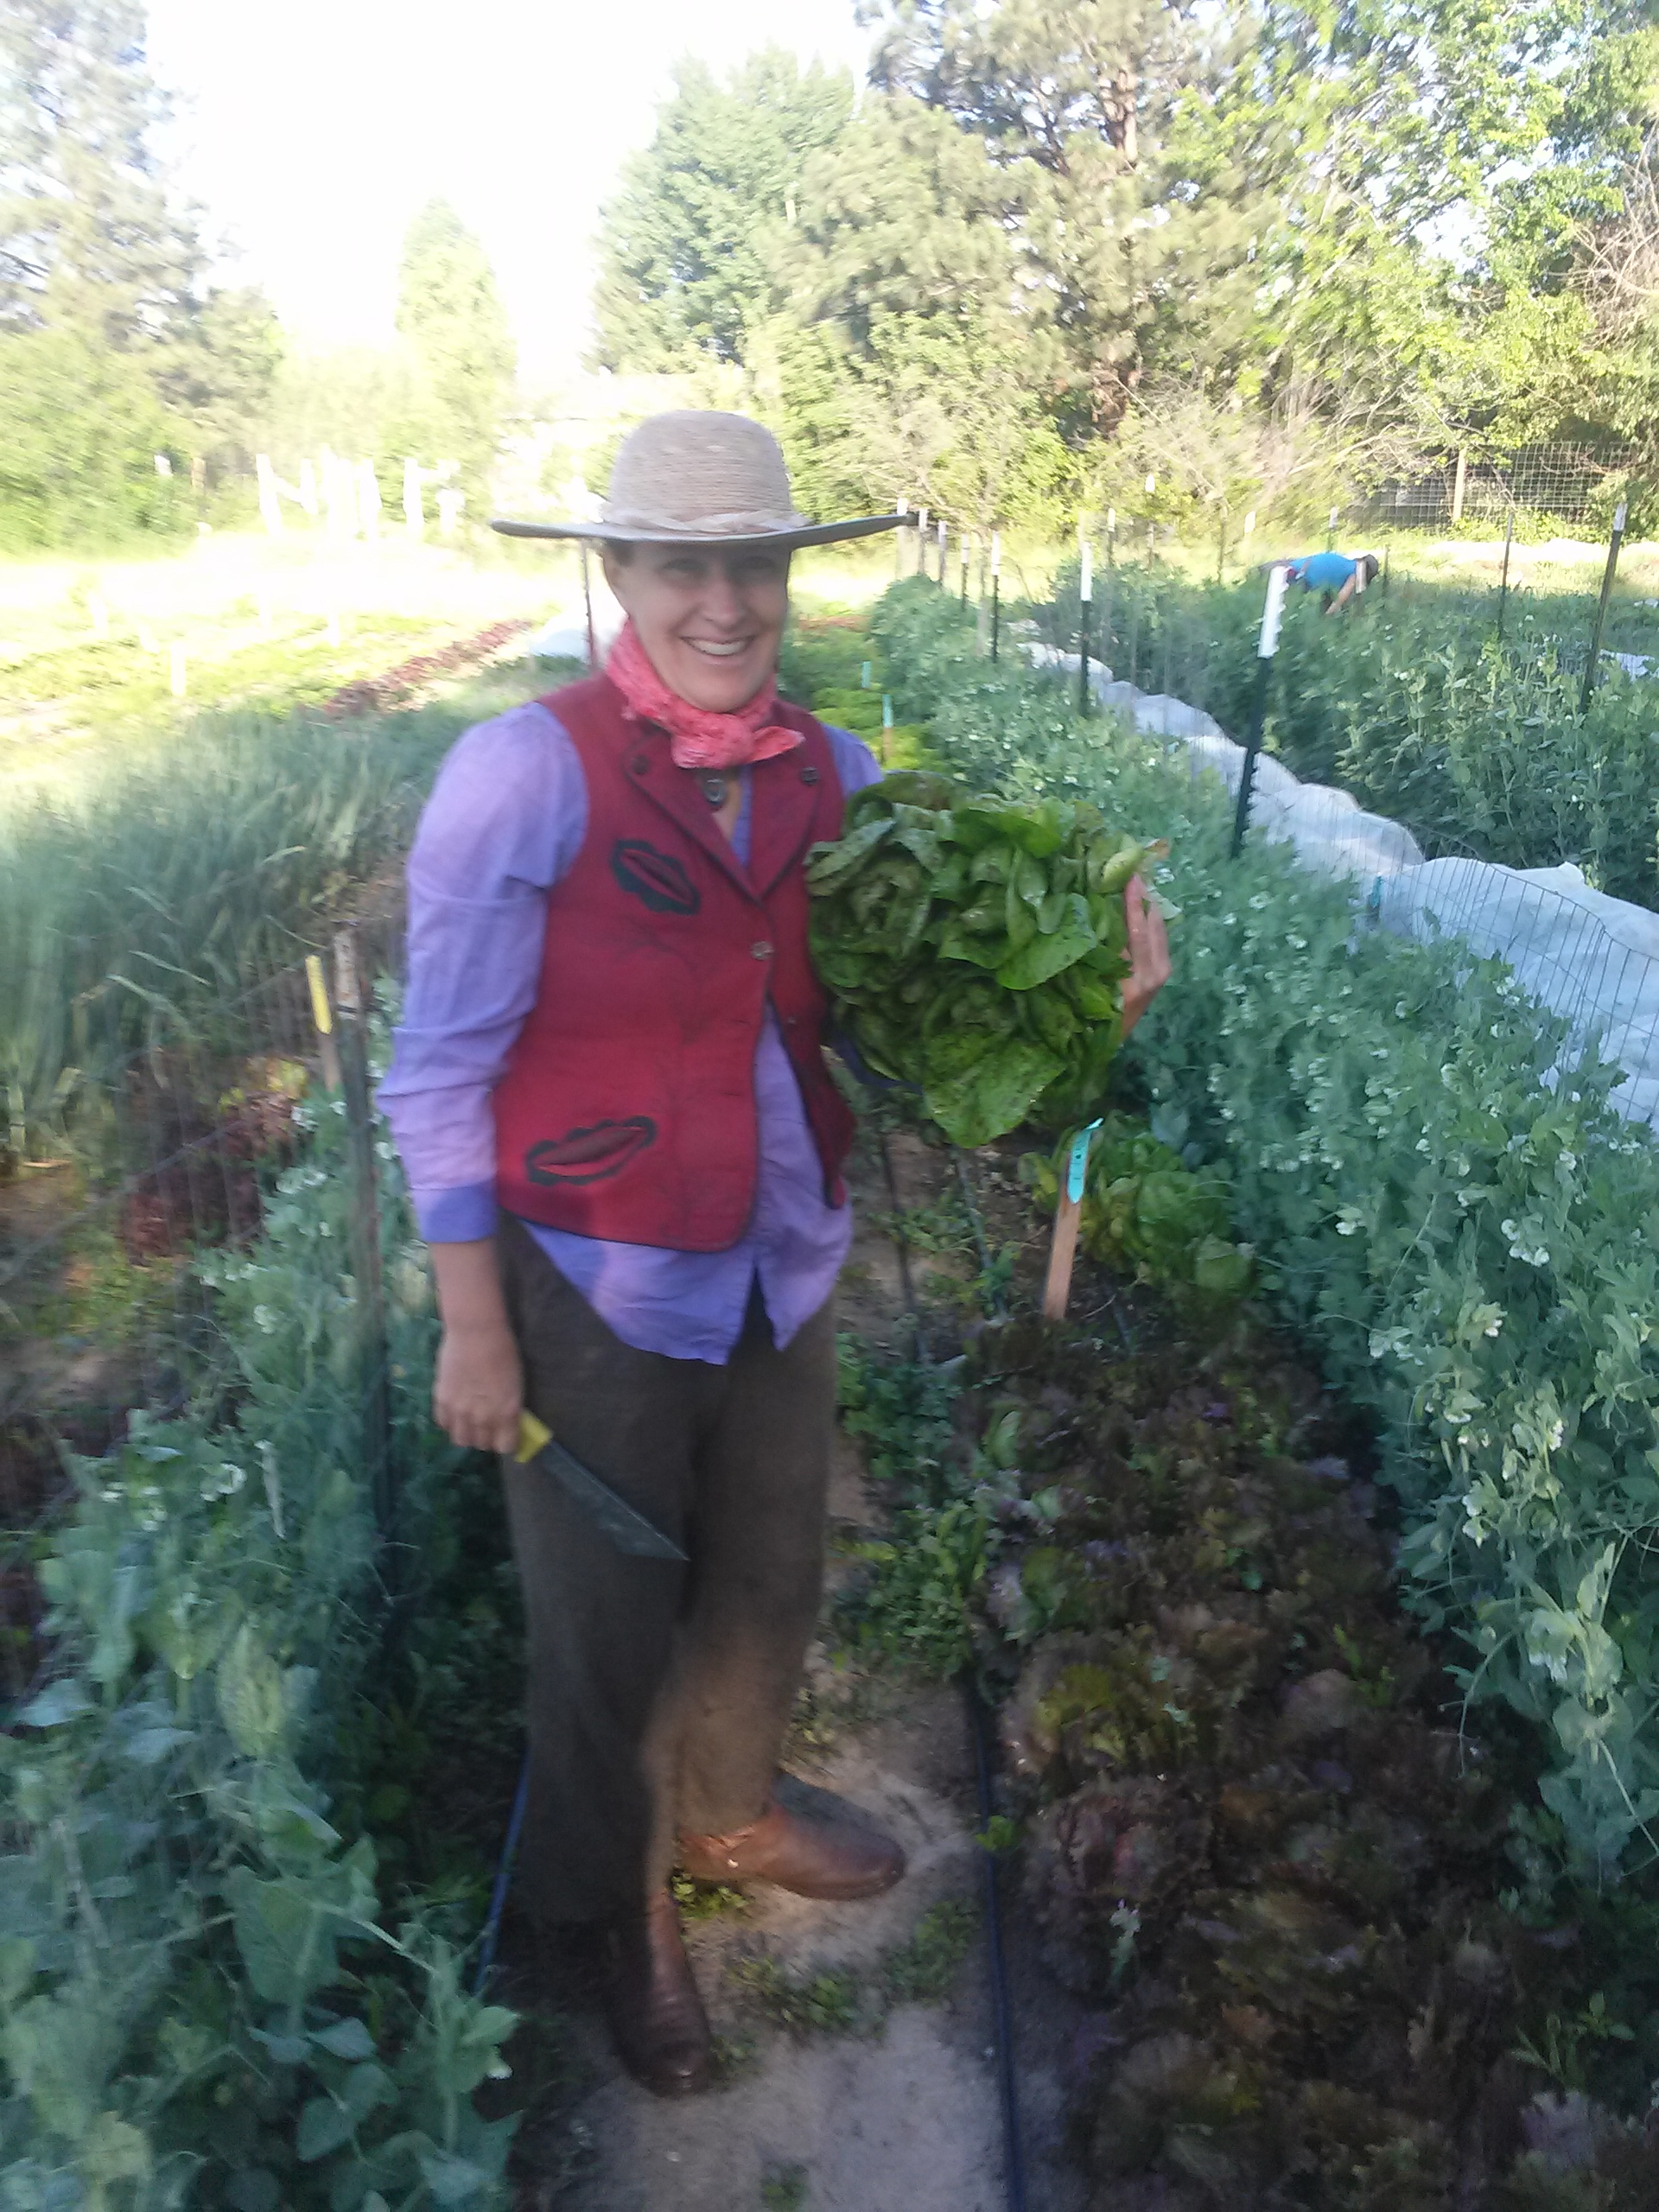 internships earthly delights farm this equitable exchange means you don t have to pay tuition and you don t get paid for